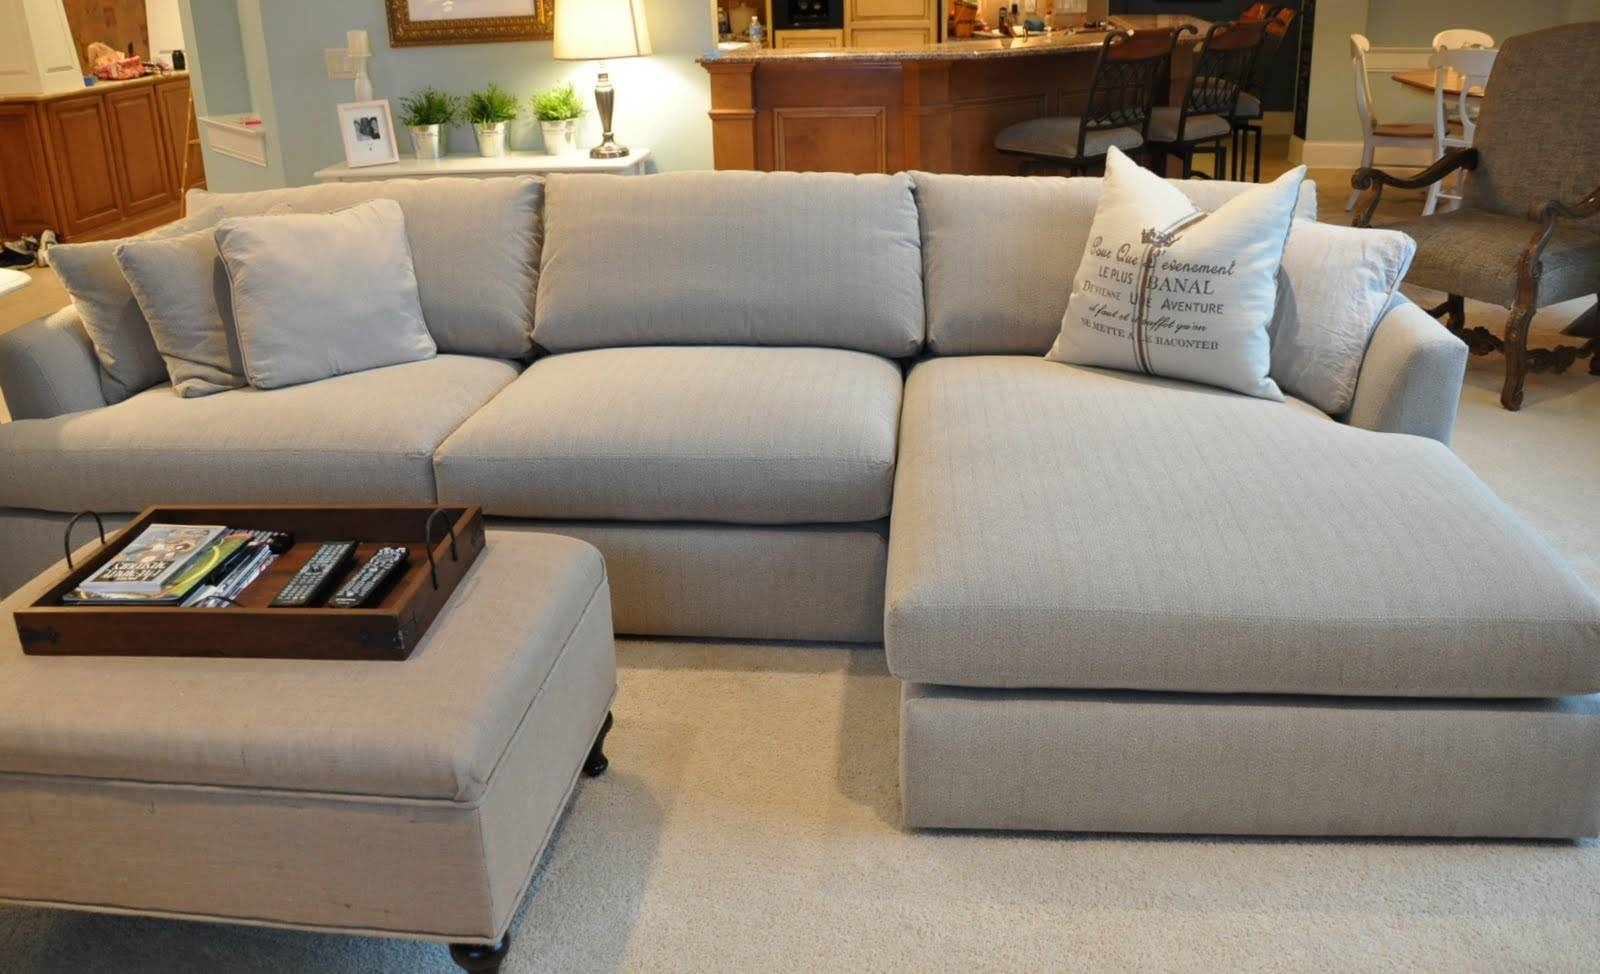 Elegant Deep Cushion Sectional Sofa 66 With Additional Sectional with regard to Sectional Sofas Under 600 (Image 9 of 30)